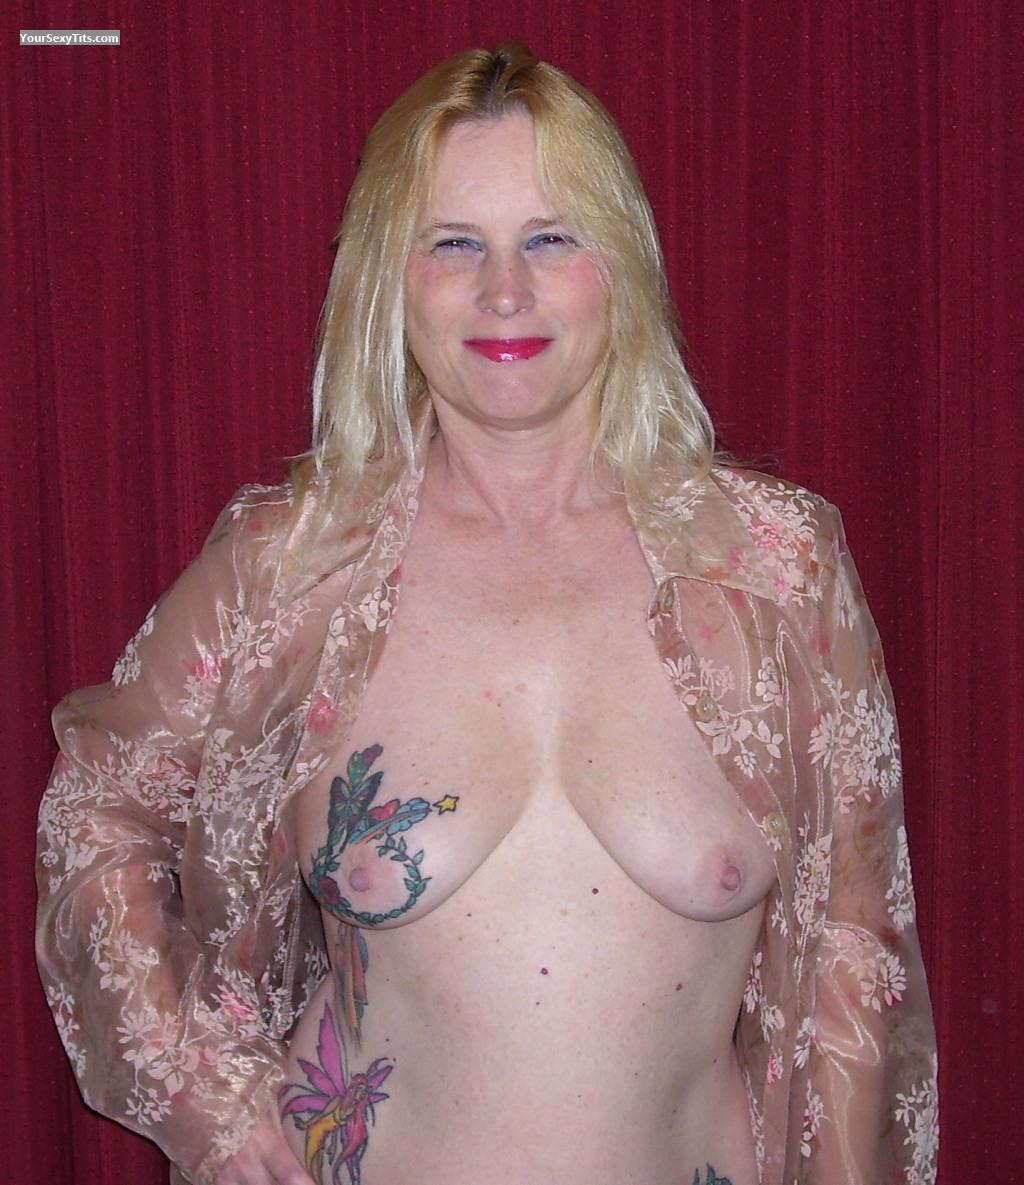 Tit Flash: Medium Tits - Topless Little Miss Linda from United States